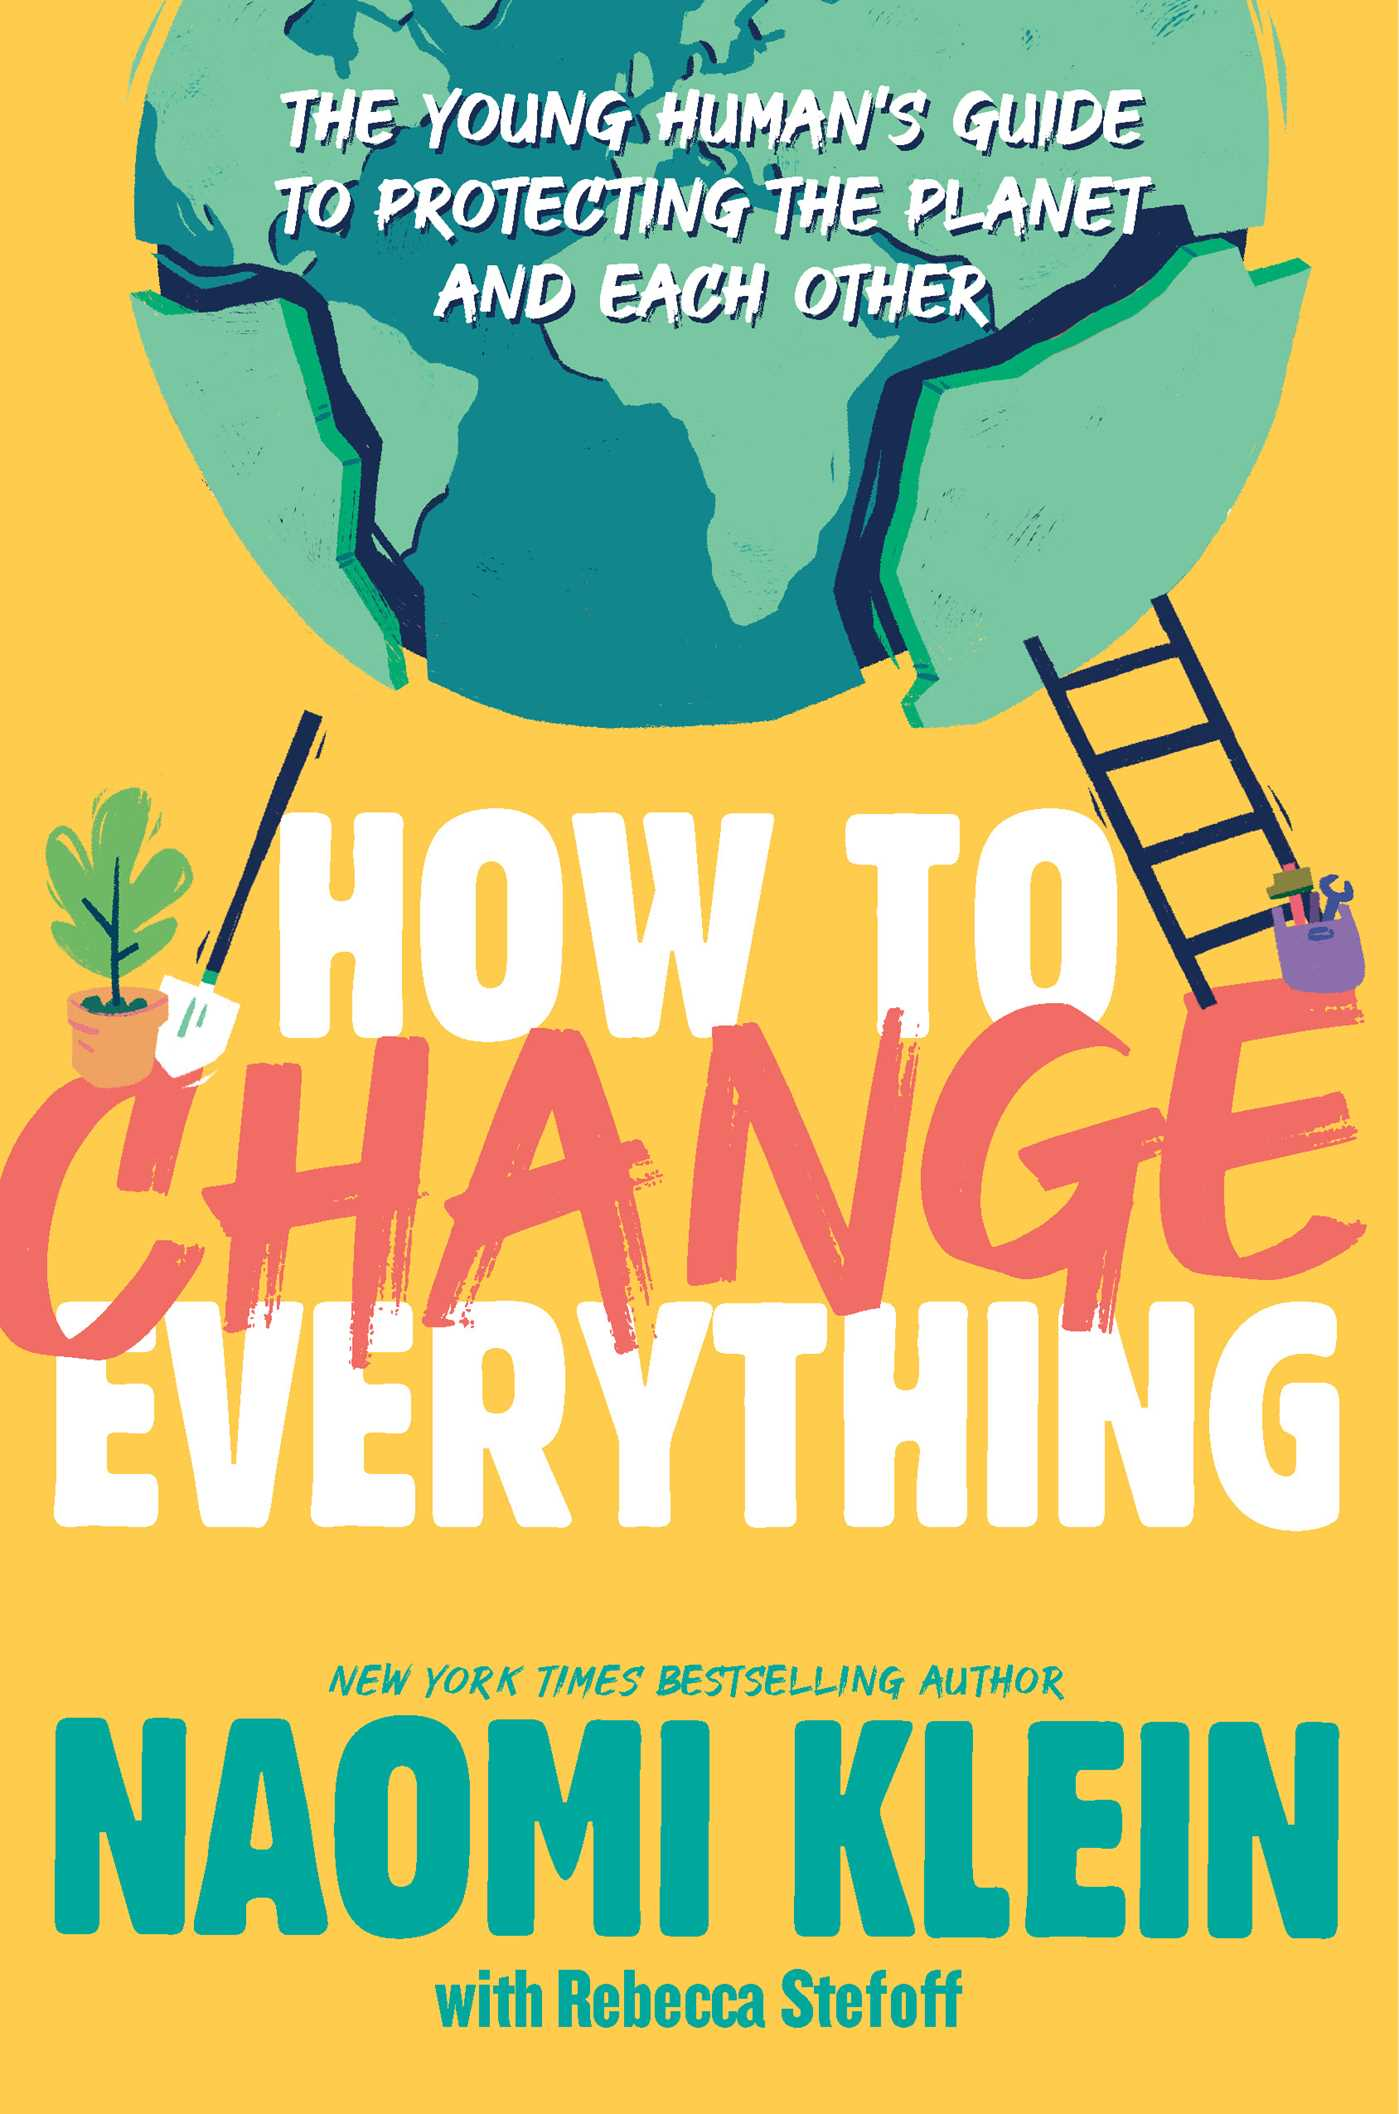 How to Change Everything: The Young Human's Guide to Protecting the Planet  and Each Other by Naomi Klein